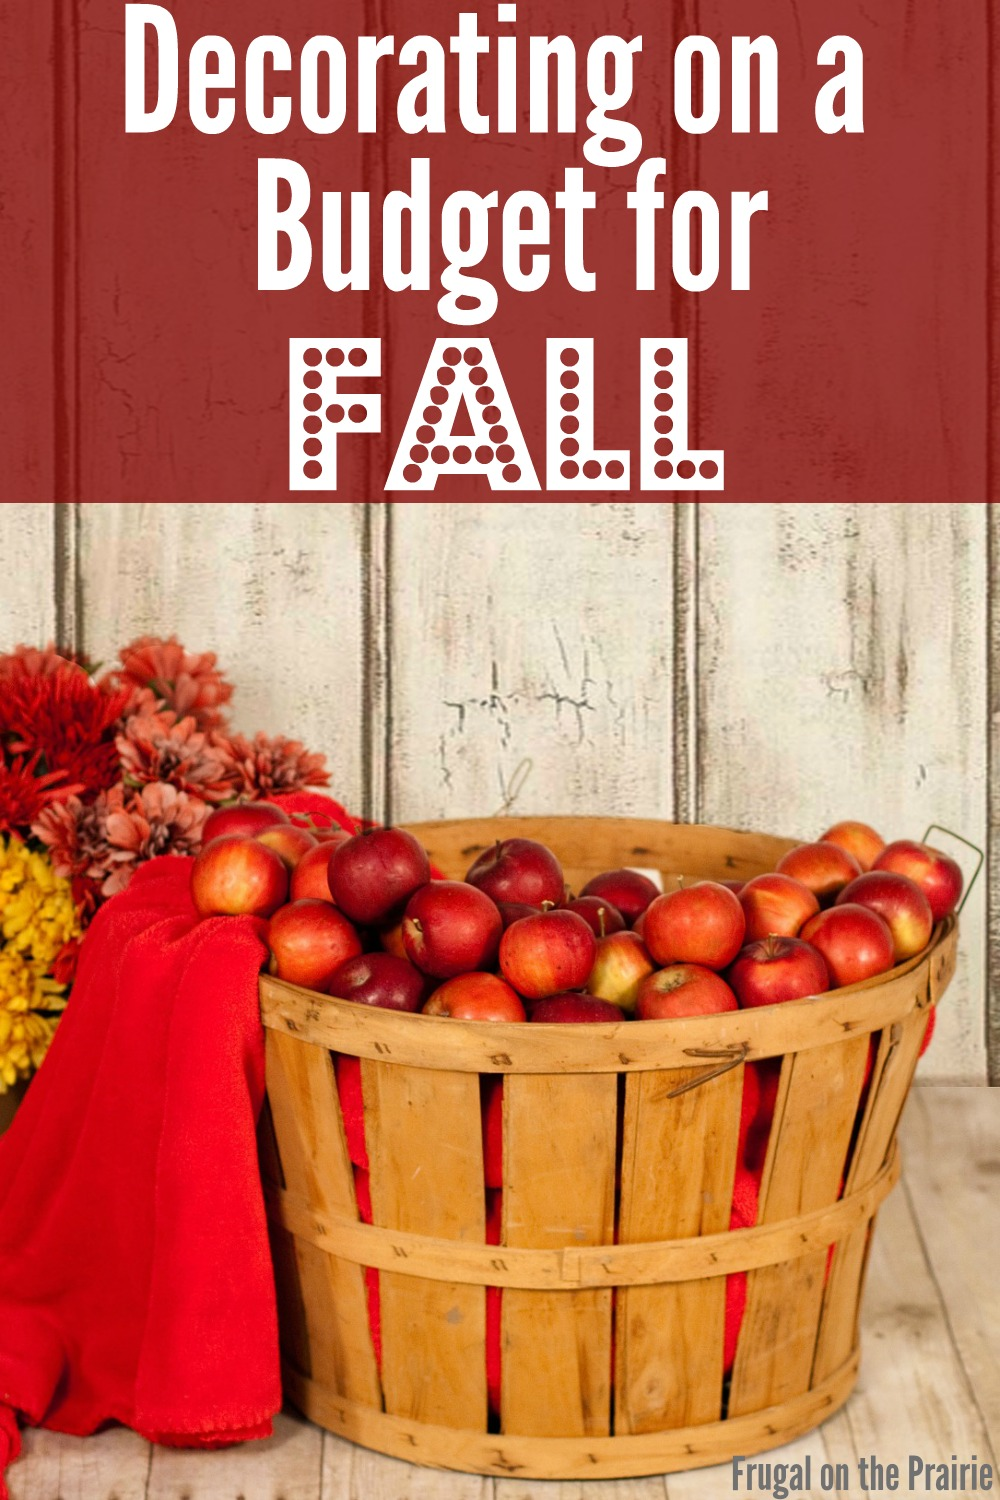 The fall season is upon us and so is the pressure to take our decorating game to the next level. Here are some thrifty tips for fall decorating on a budget!